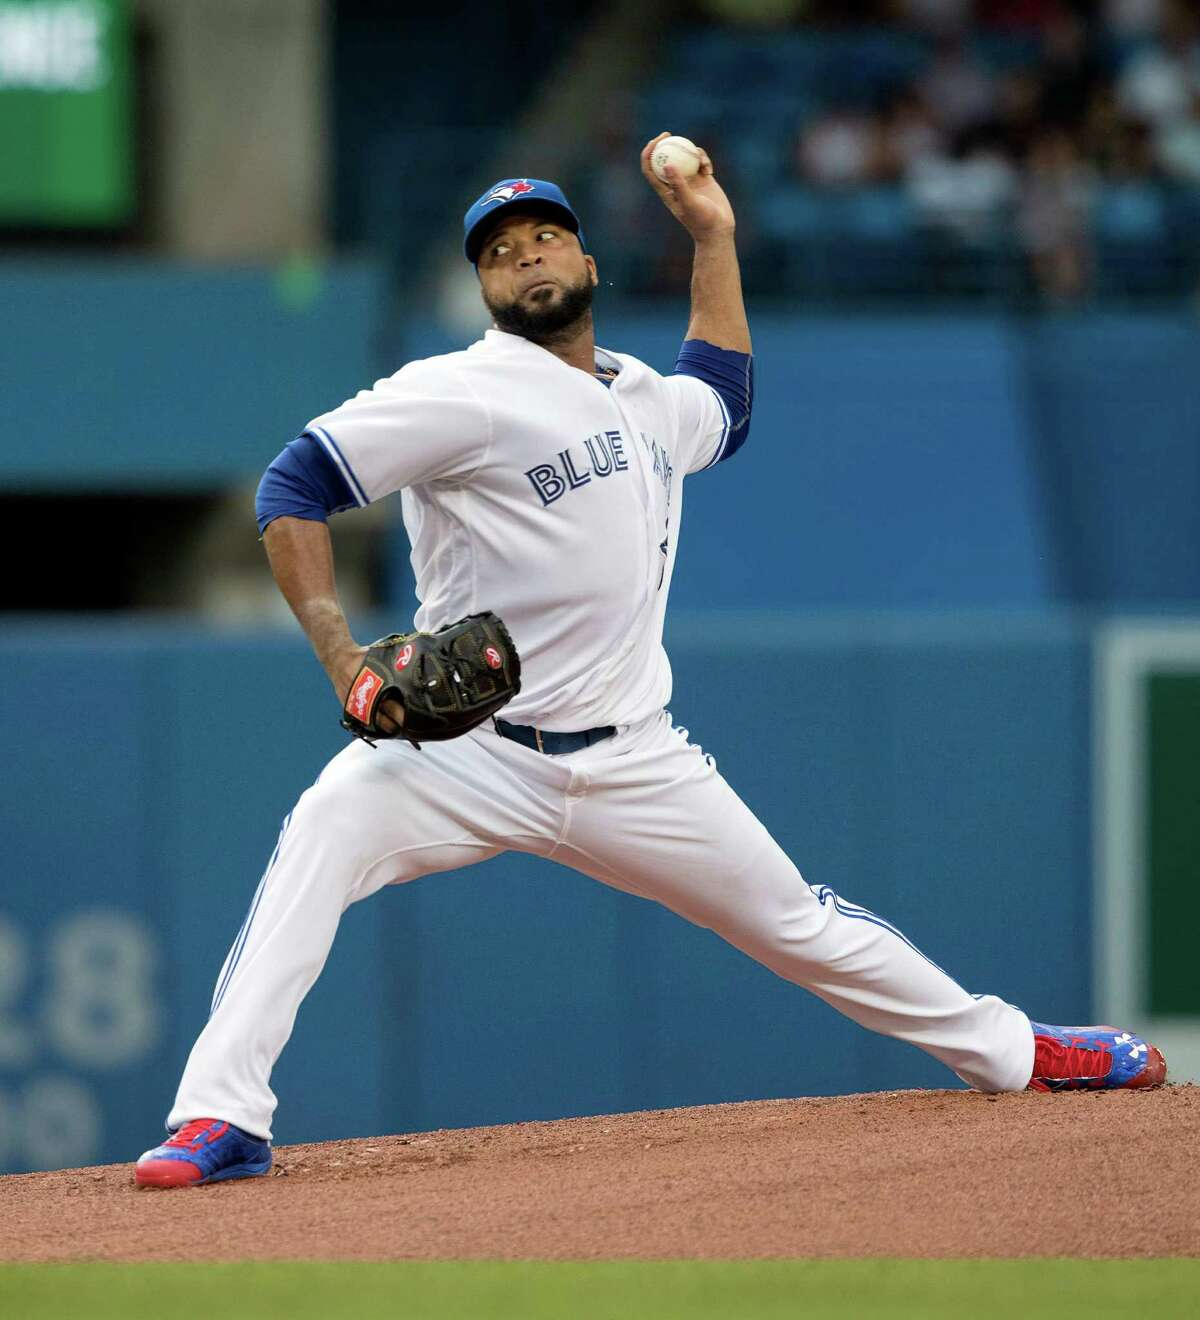 Toronto Blue Jays starting pitcher Francisco Liriano throws against the Houston Astros during the first inning of a baseball game in Toronto, Friday, Aug. 12, 2016. (Fred Thornhill/The Canadian Press via AP)